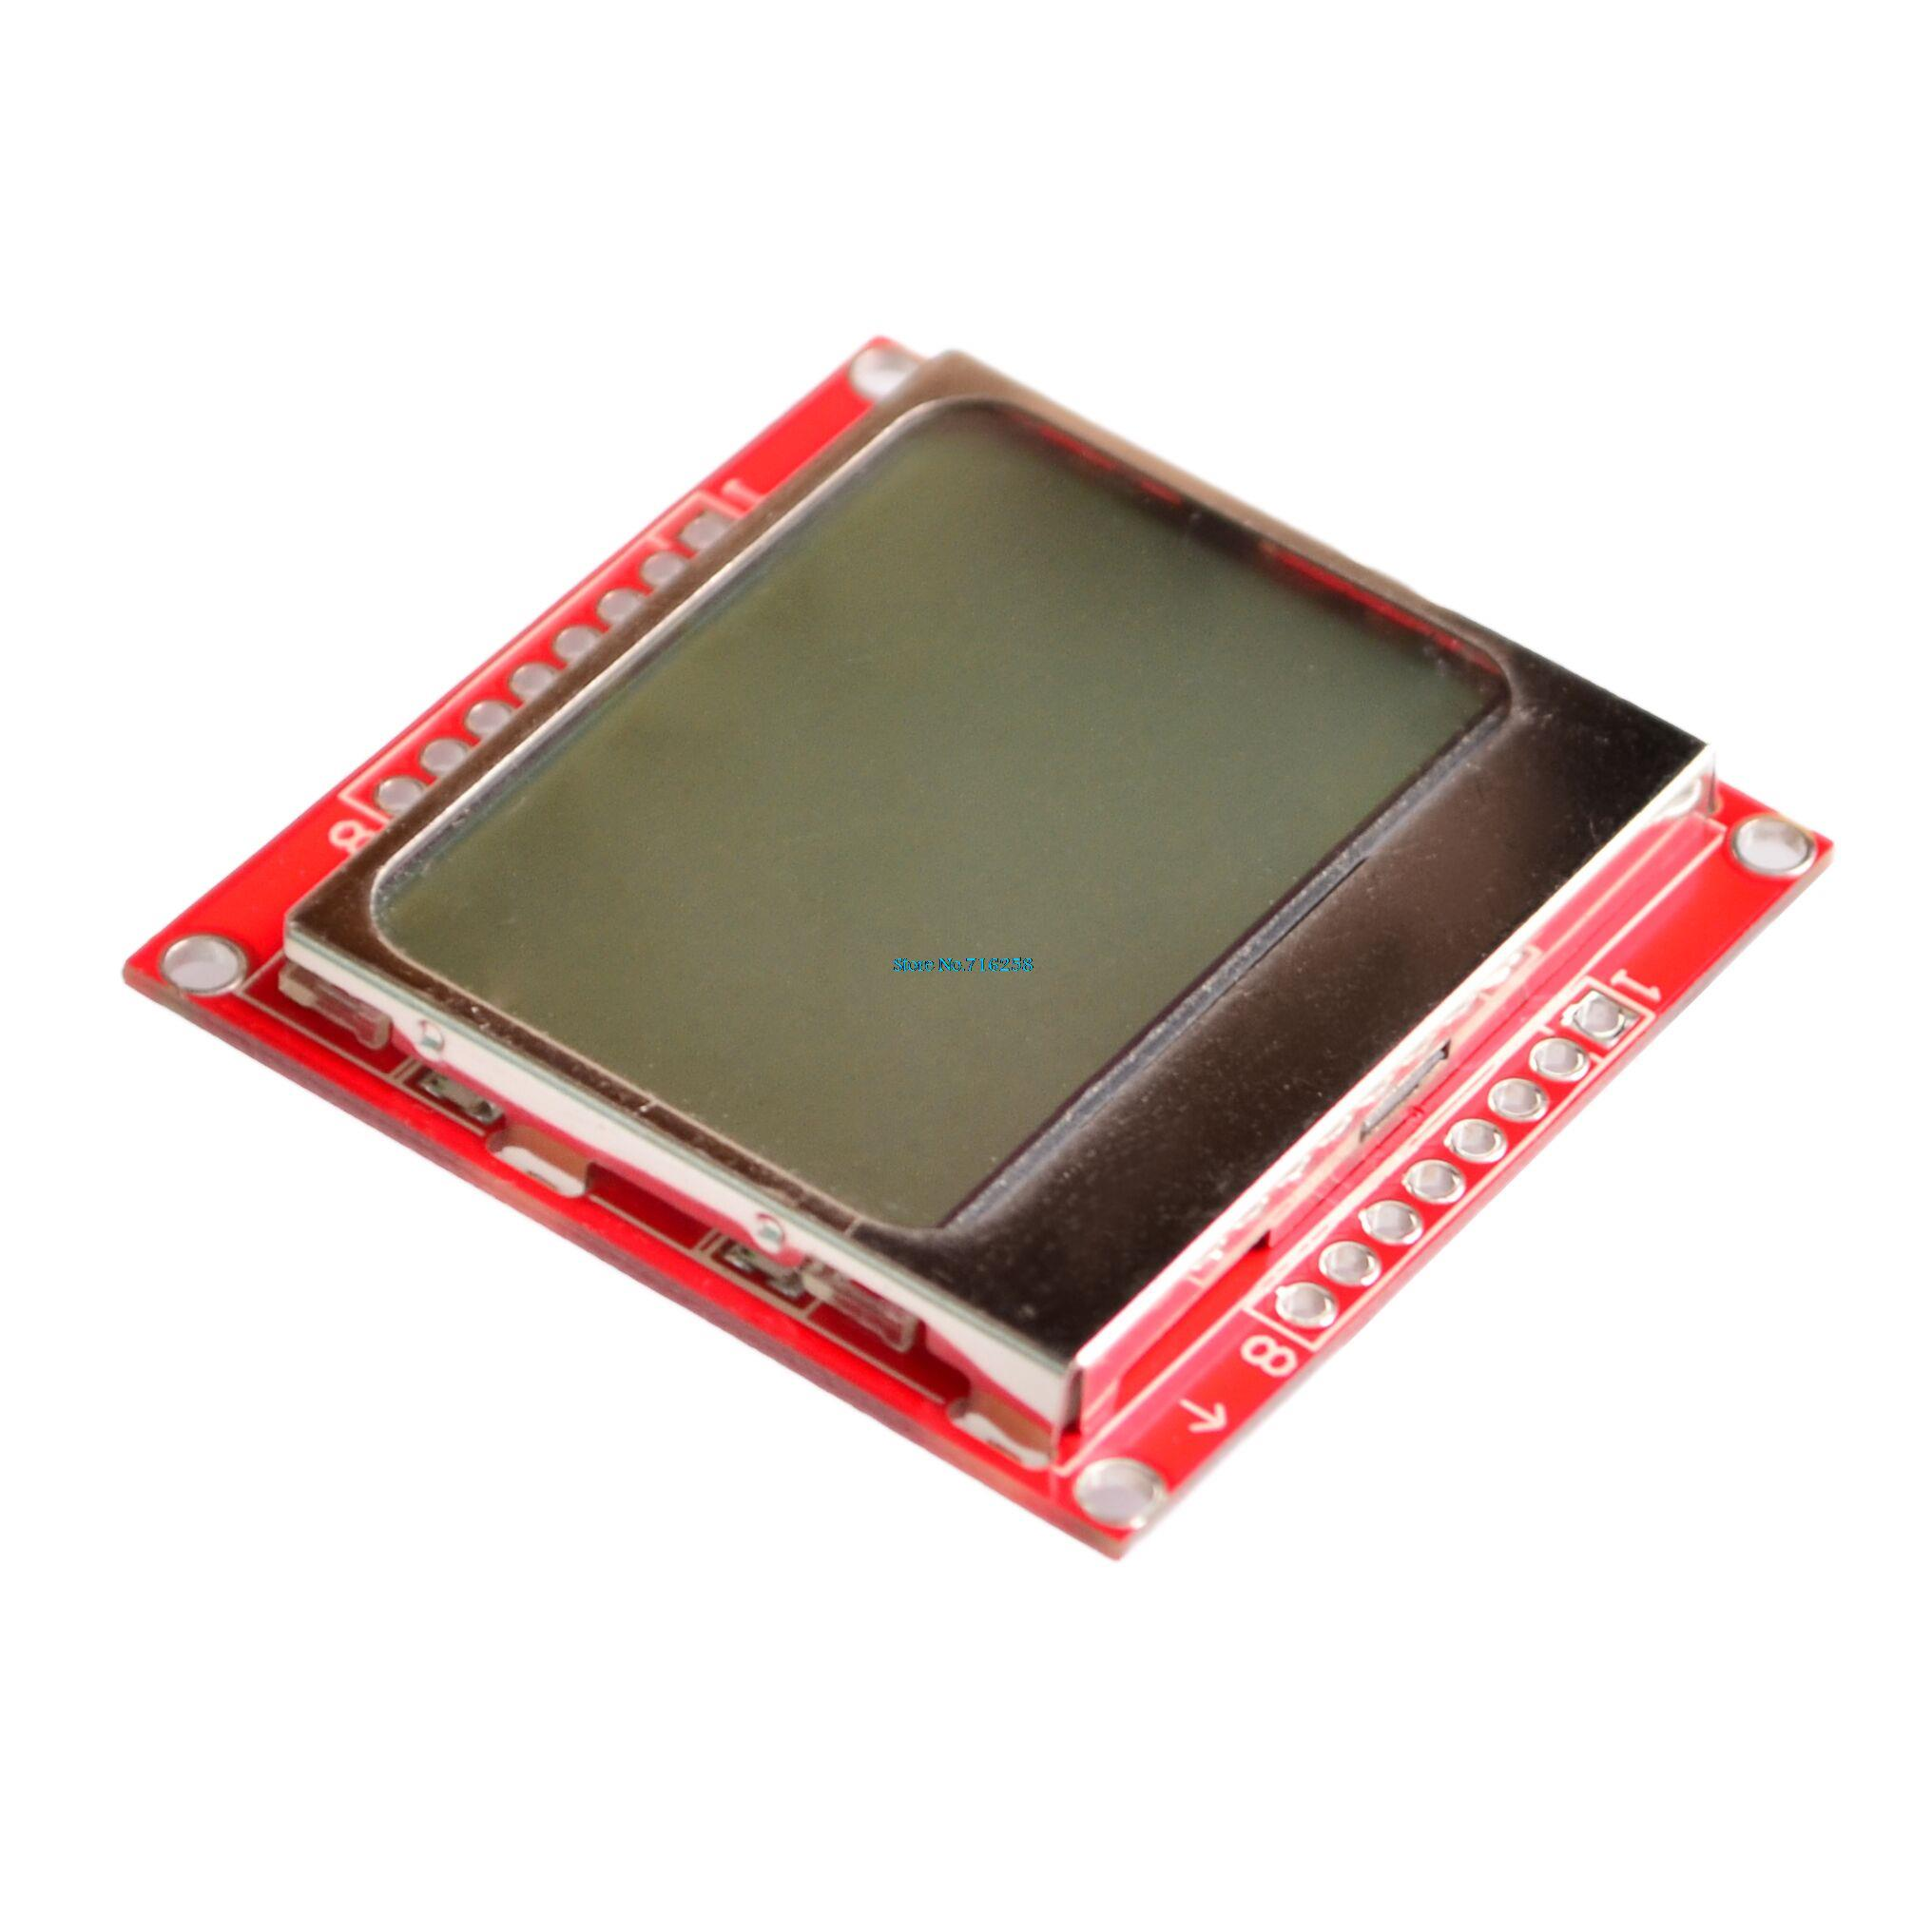 Blue Backlight Nokia 5110 Lcd Module With Adapter Pcb For Arduino Ic New zw